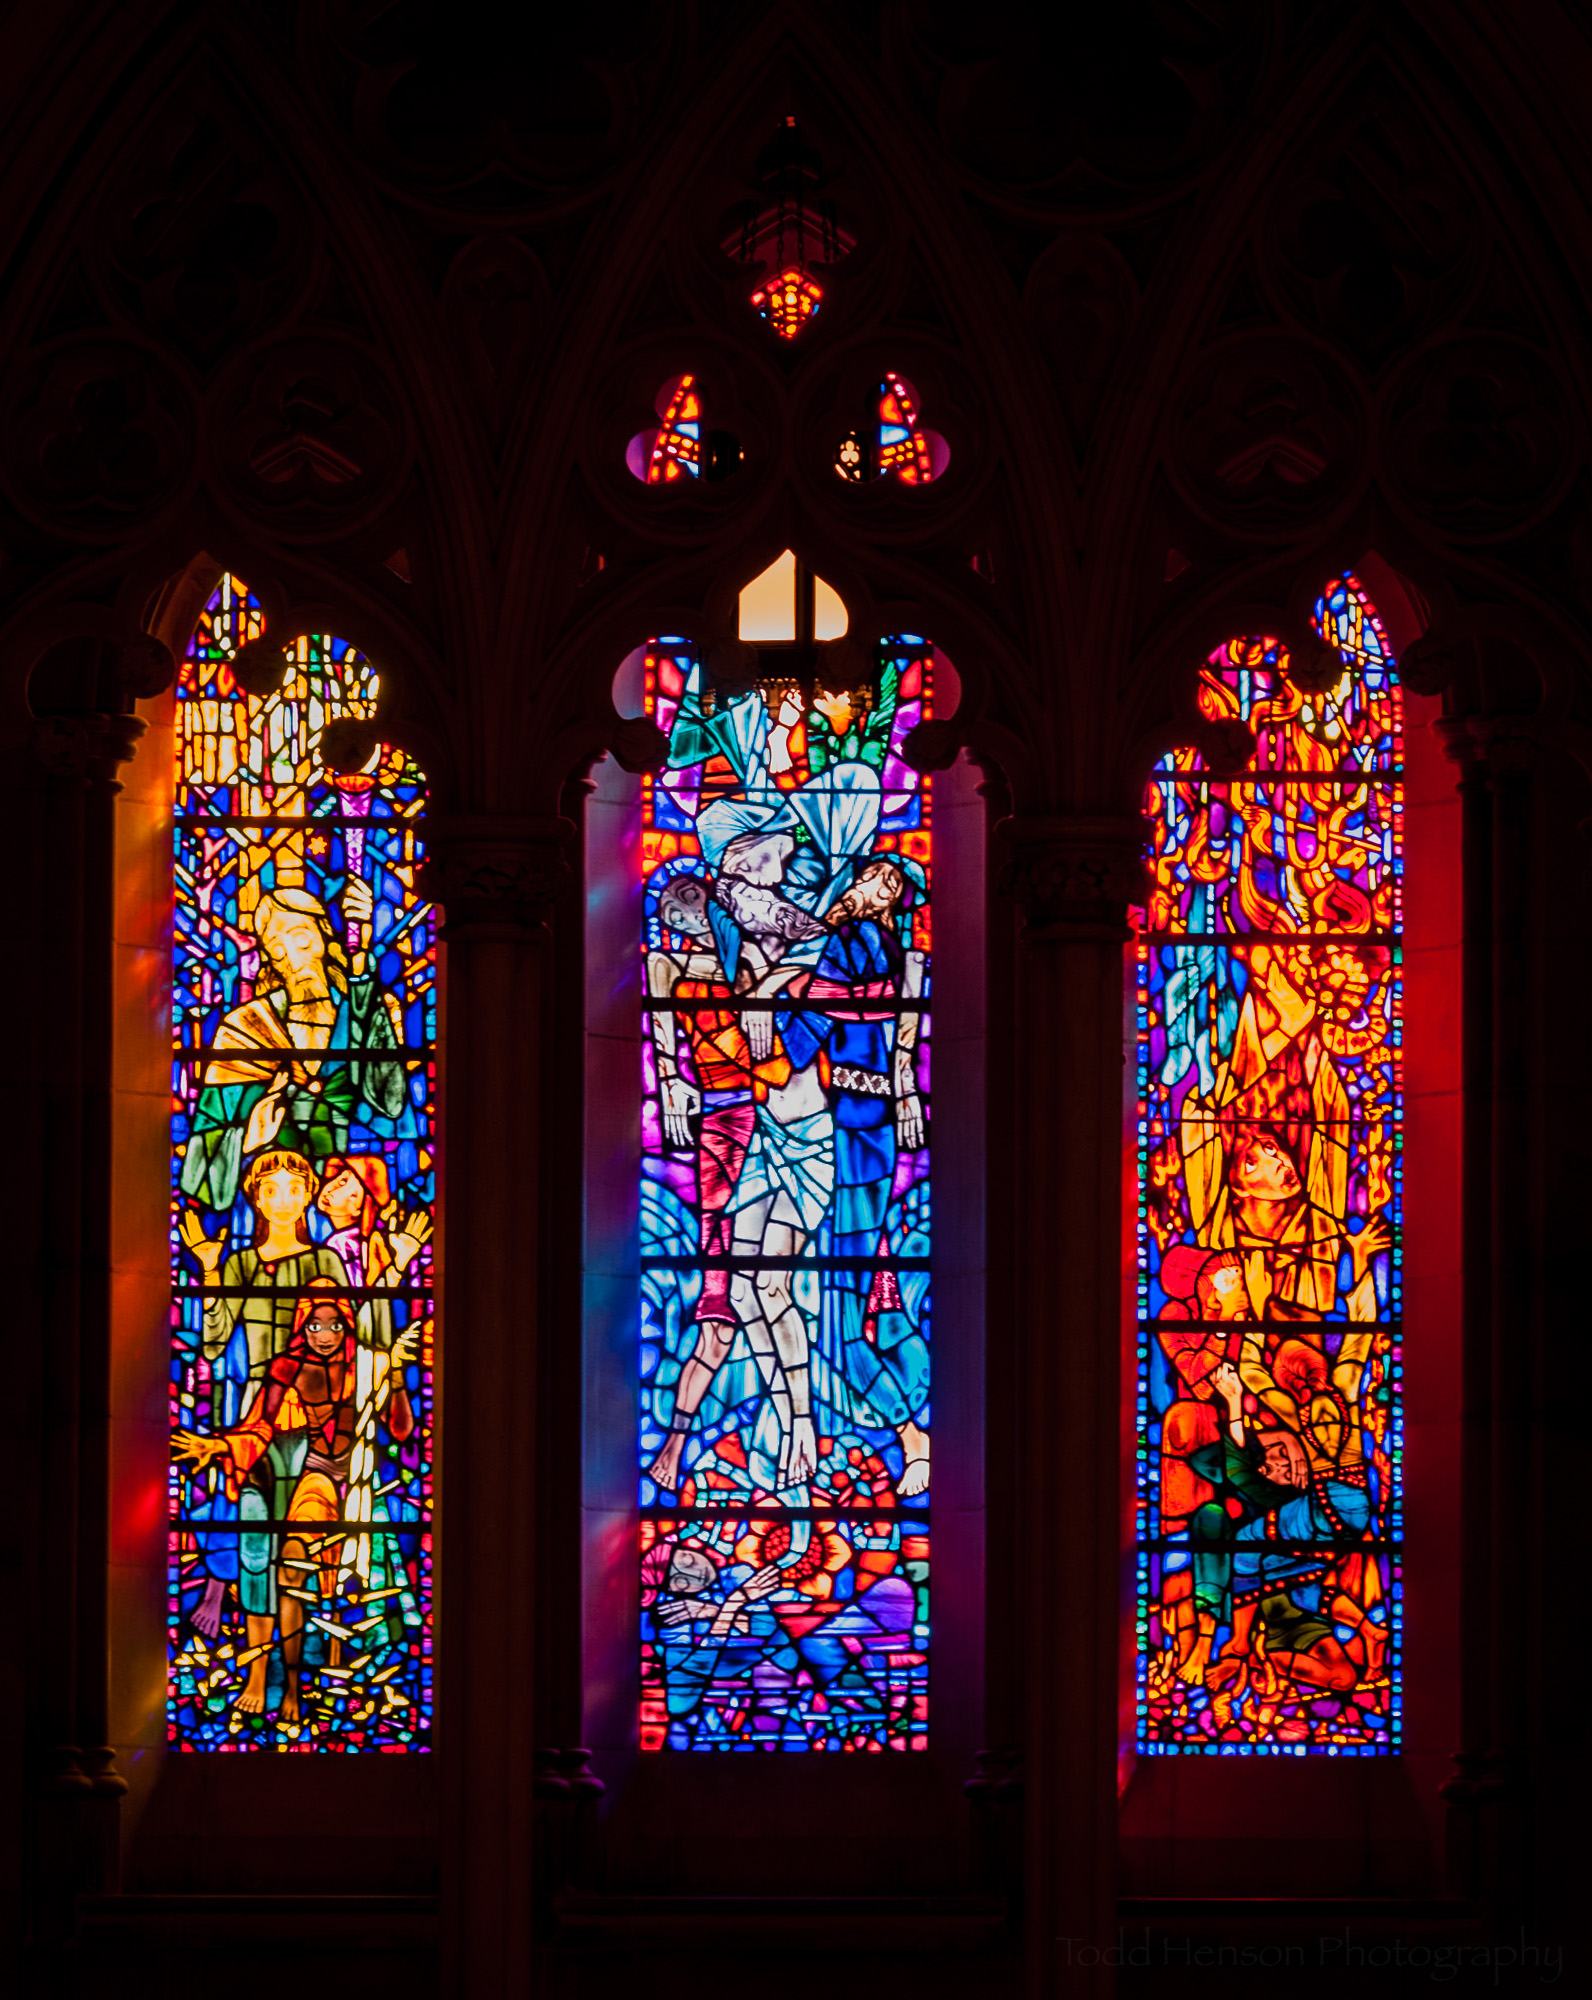 Stained glass from Washington National Cathedral.